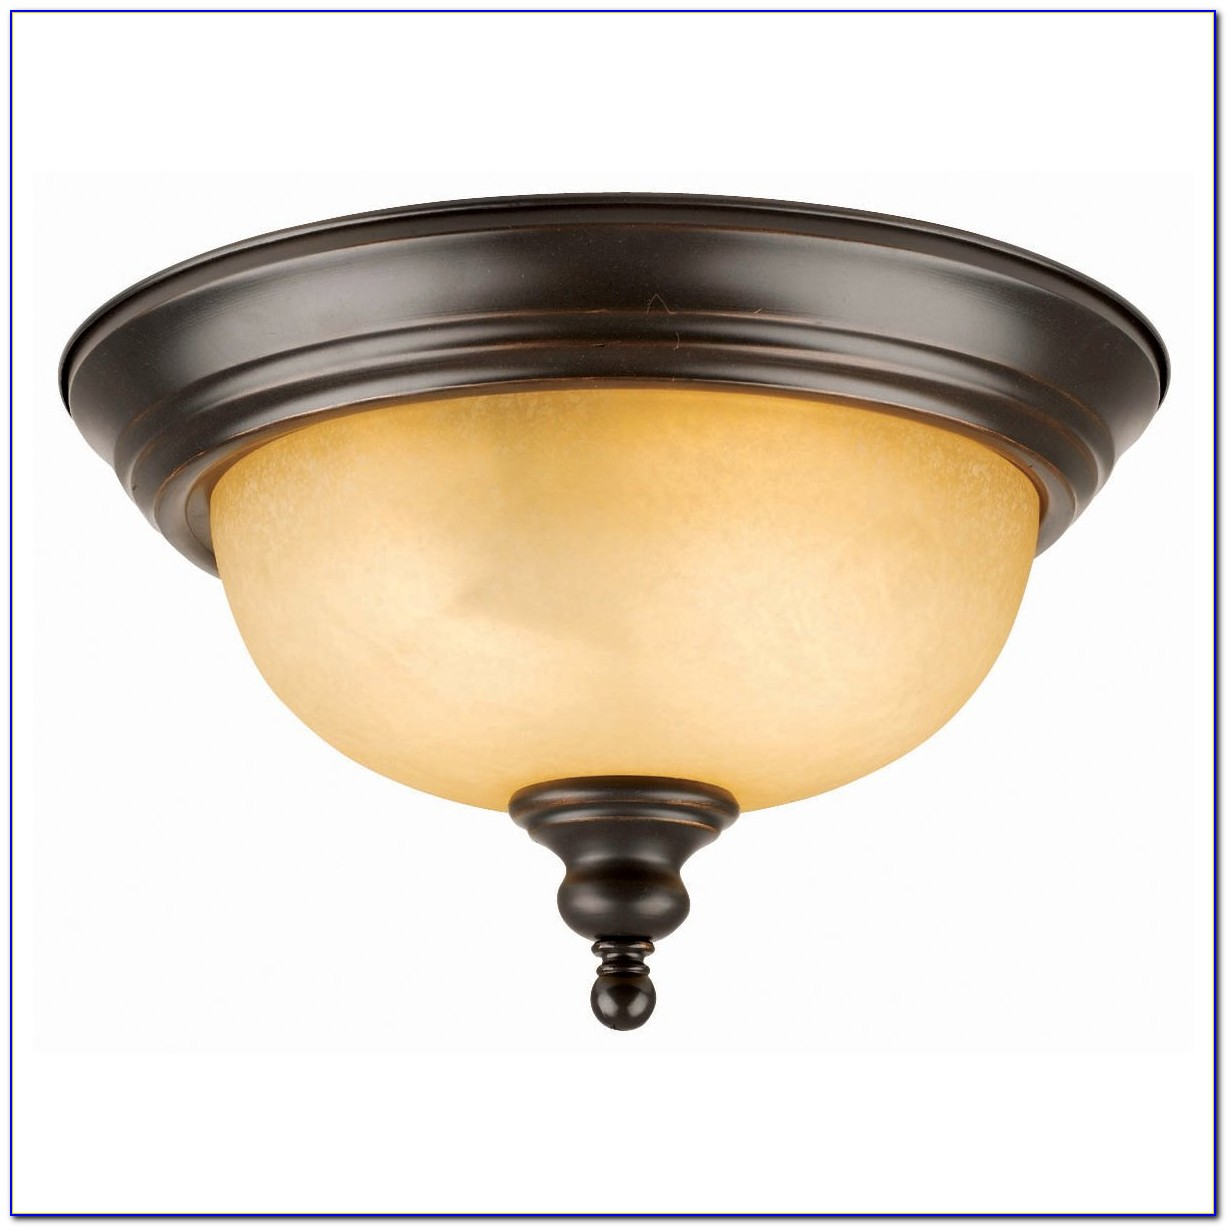 Semi Flush Mount Ceiling Light Oil Rubbed Bronze